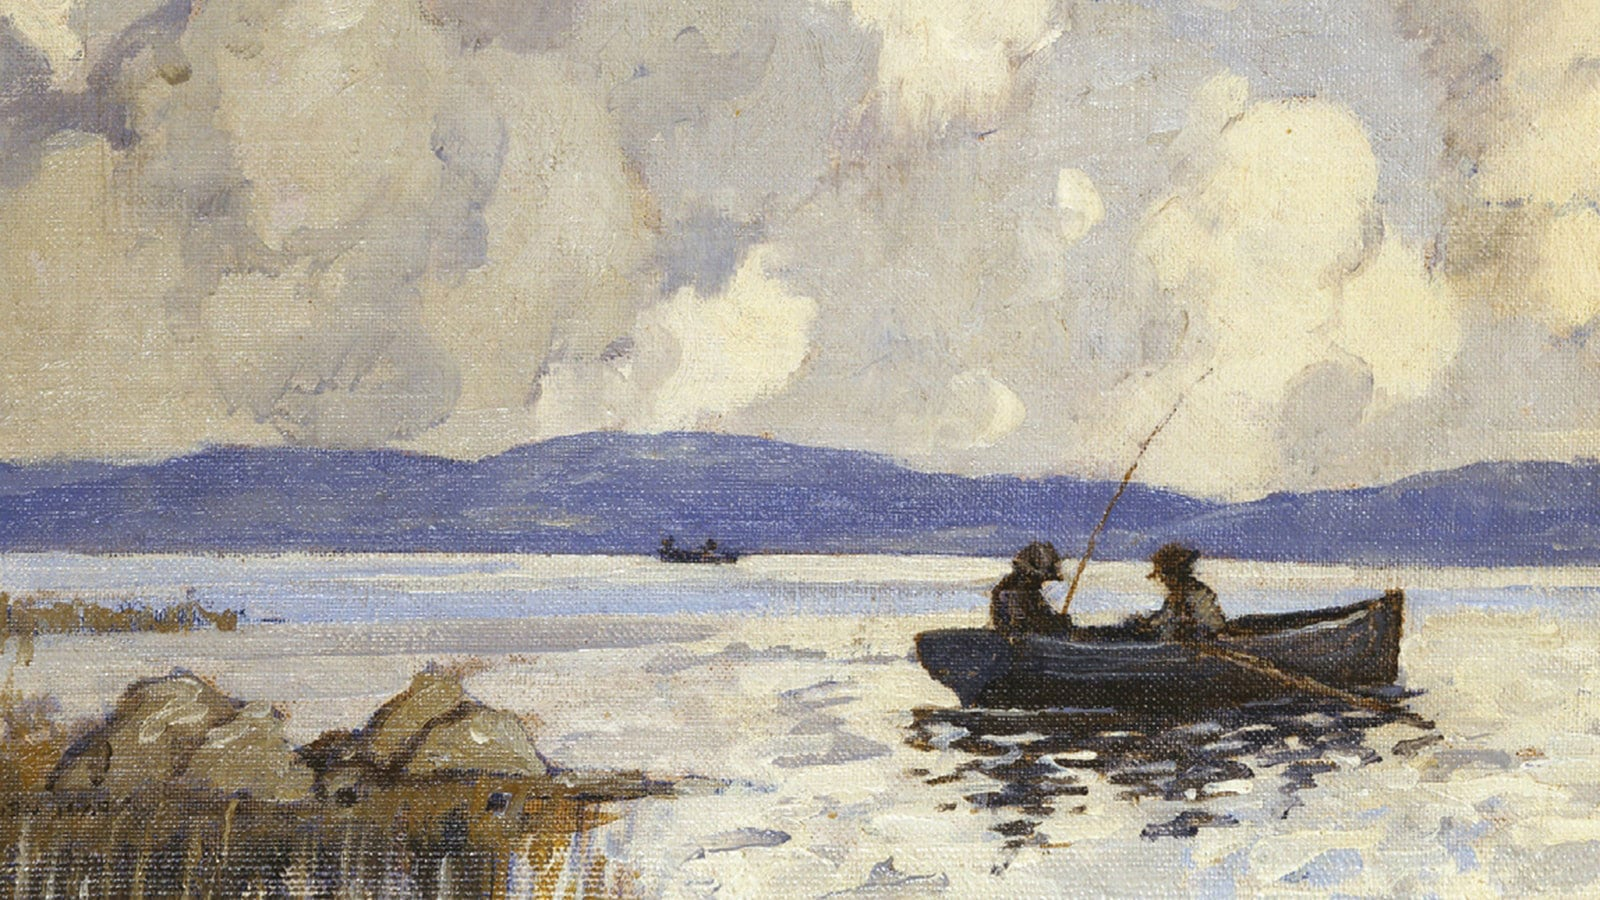 A watercolour painting of two fisherman on a boat in a river